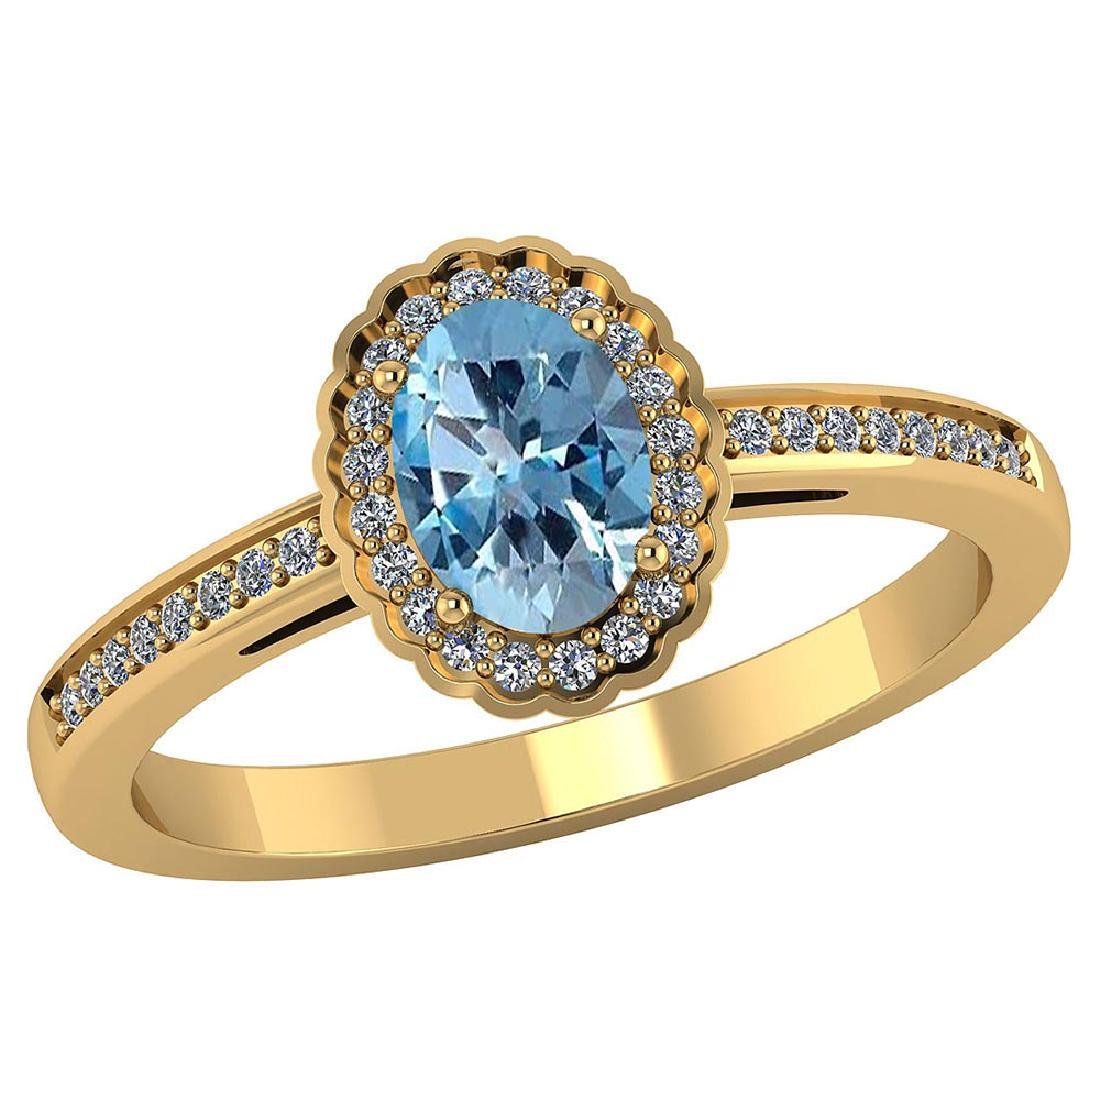 Certified 1.60 CTW Genuine Aquamarine And Diamond 14K Y